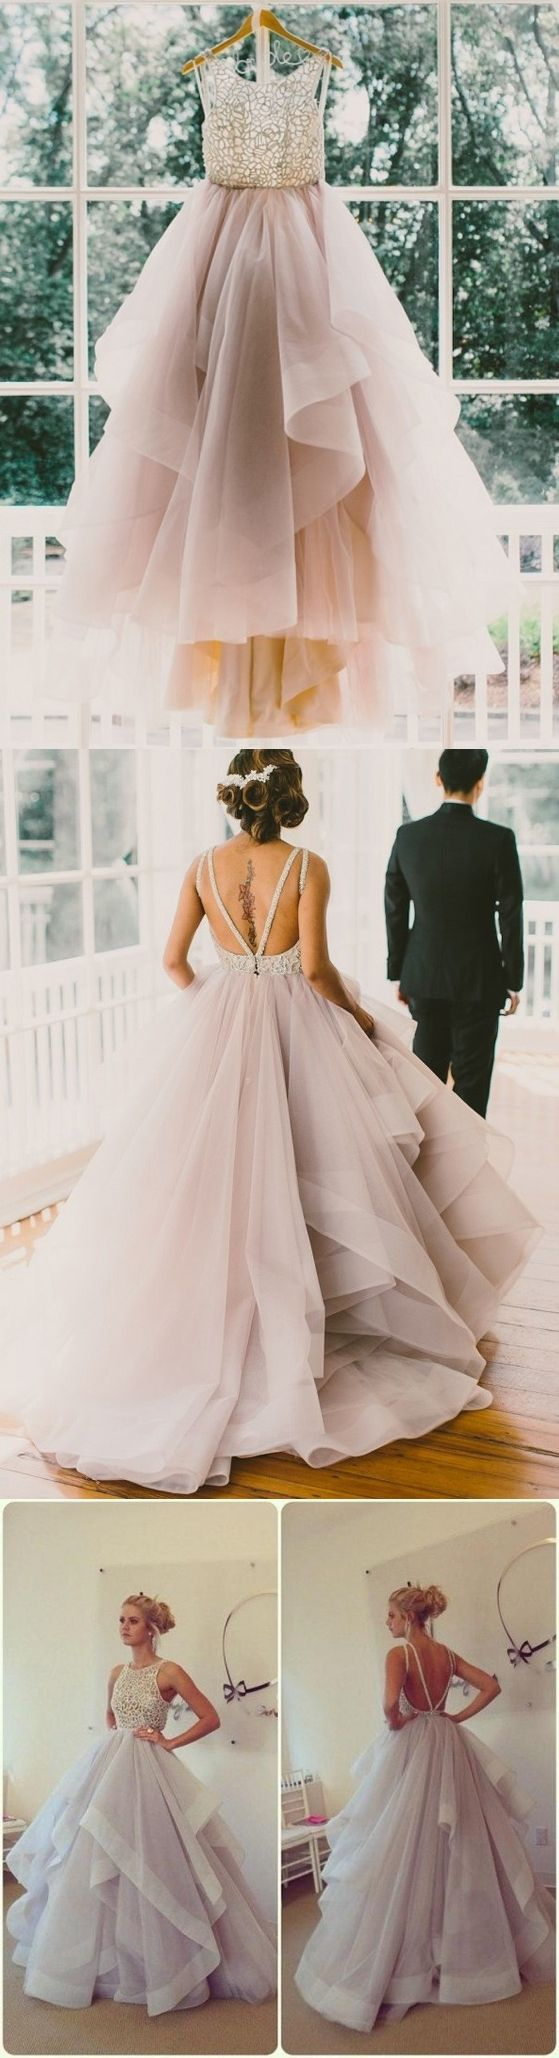 Long Prom Dresses,Charming A-Line Beading Christmas Party Dresses,Long Party Dresses,Christmas Dresses On Sale